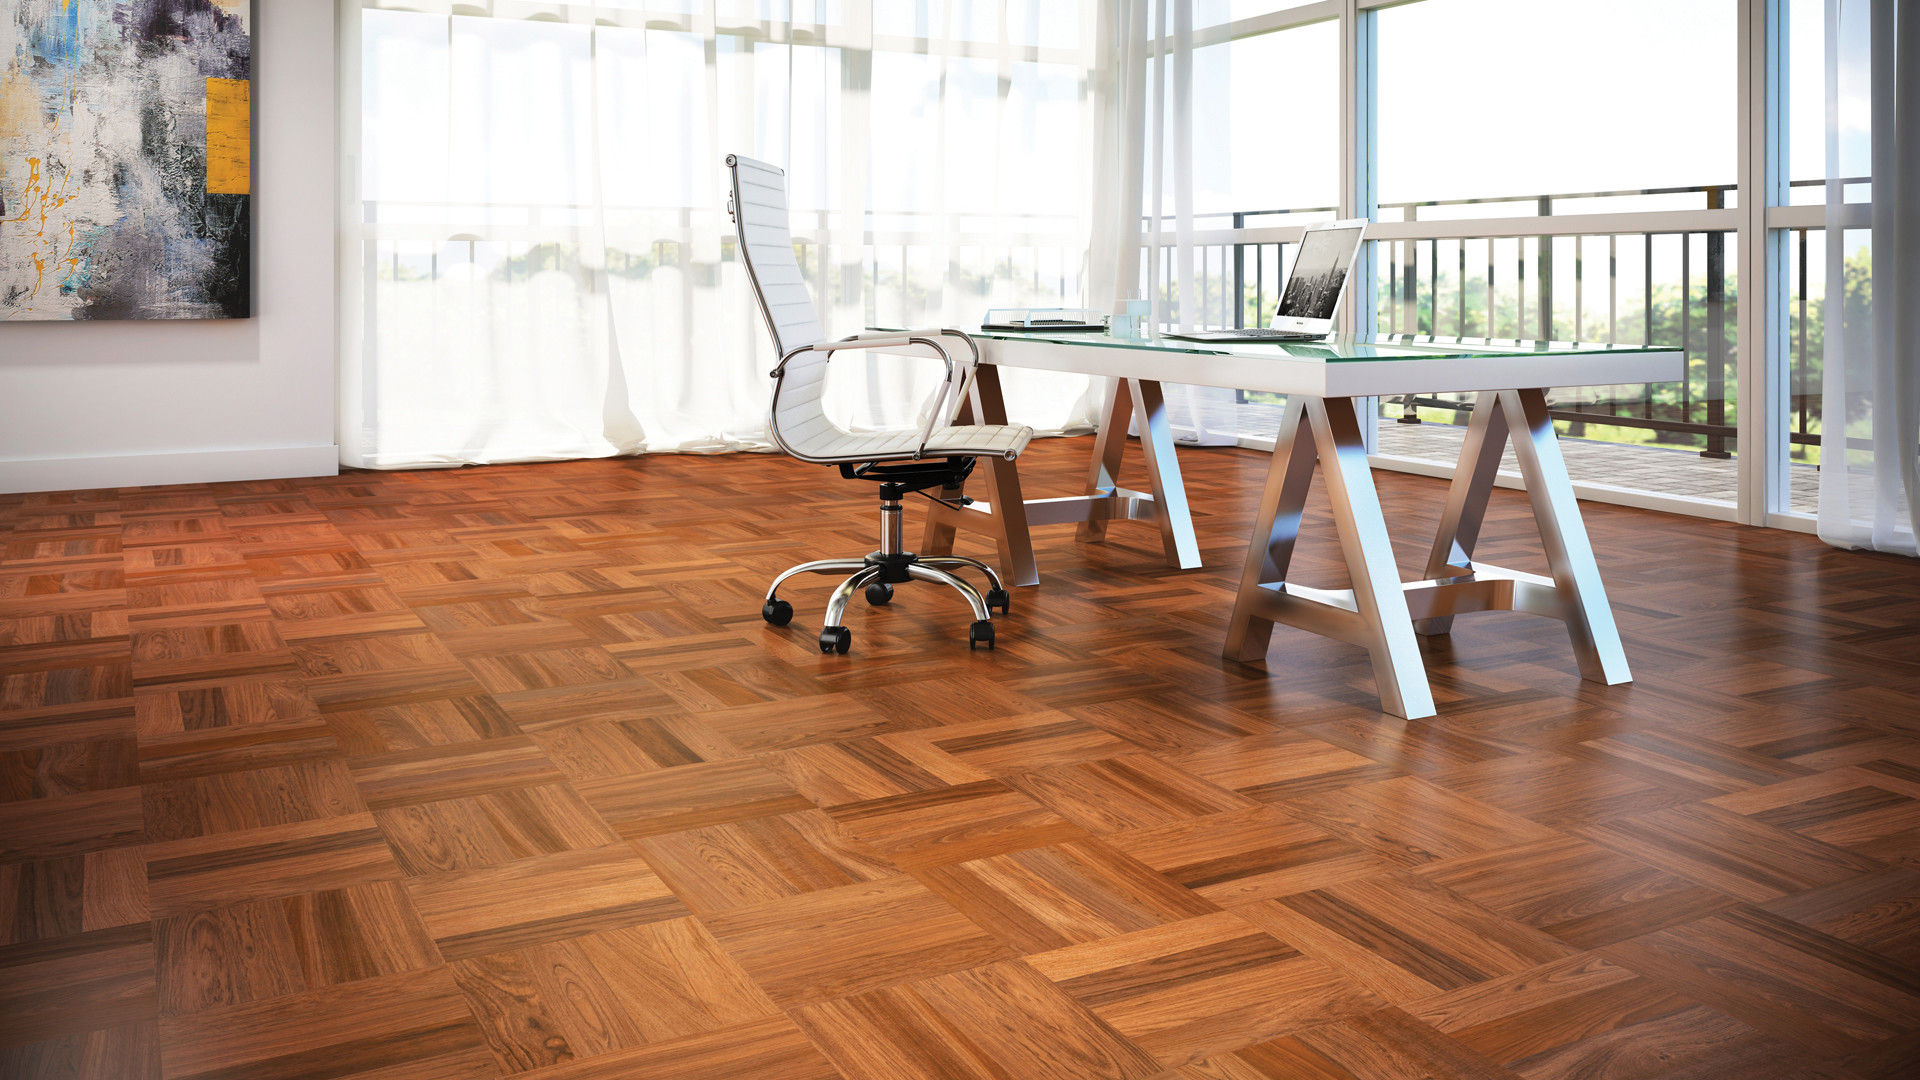 top quality hardwood flooring of 4 latest hardwood flooring trends of 2018 lauzon flooring throughout hardwood floors made out of our domestic species hard maple red oak and yellow birch from our ambiance collection are now offered in wider and longer